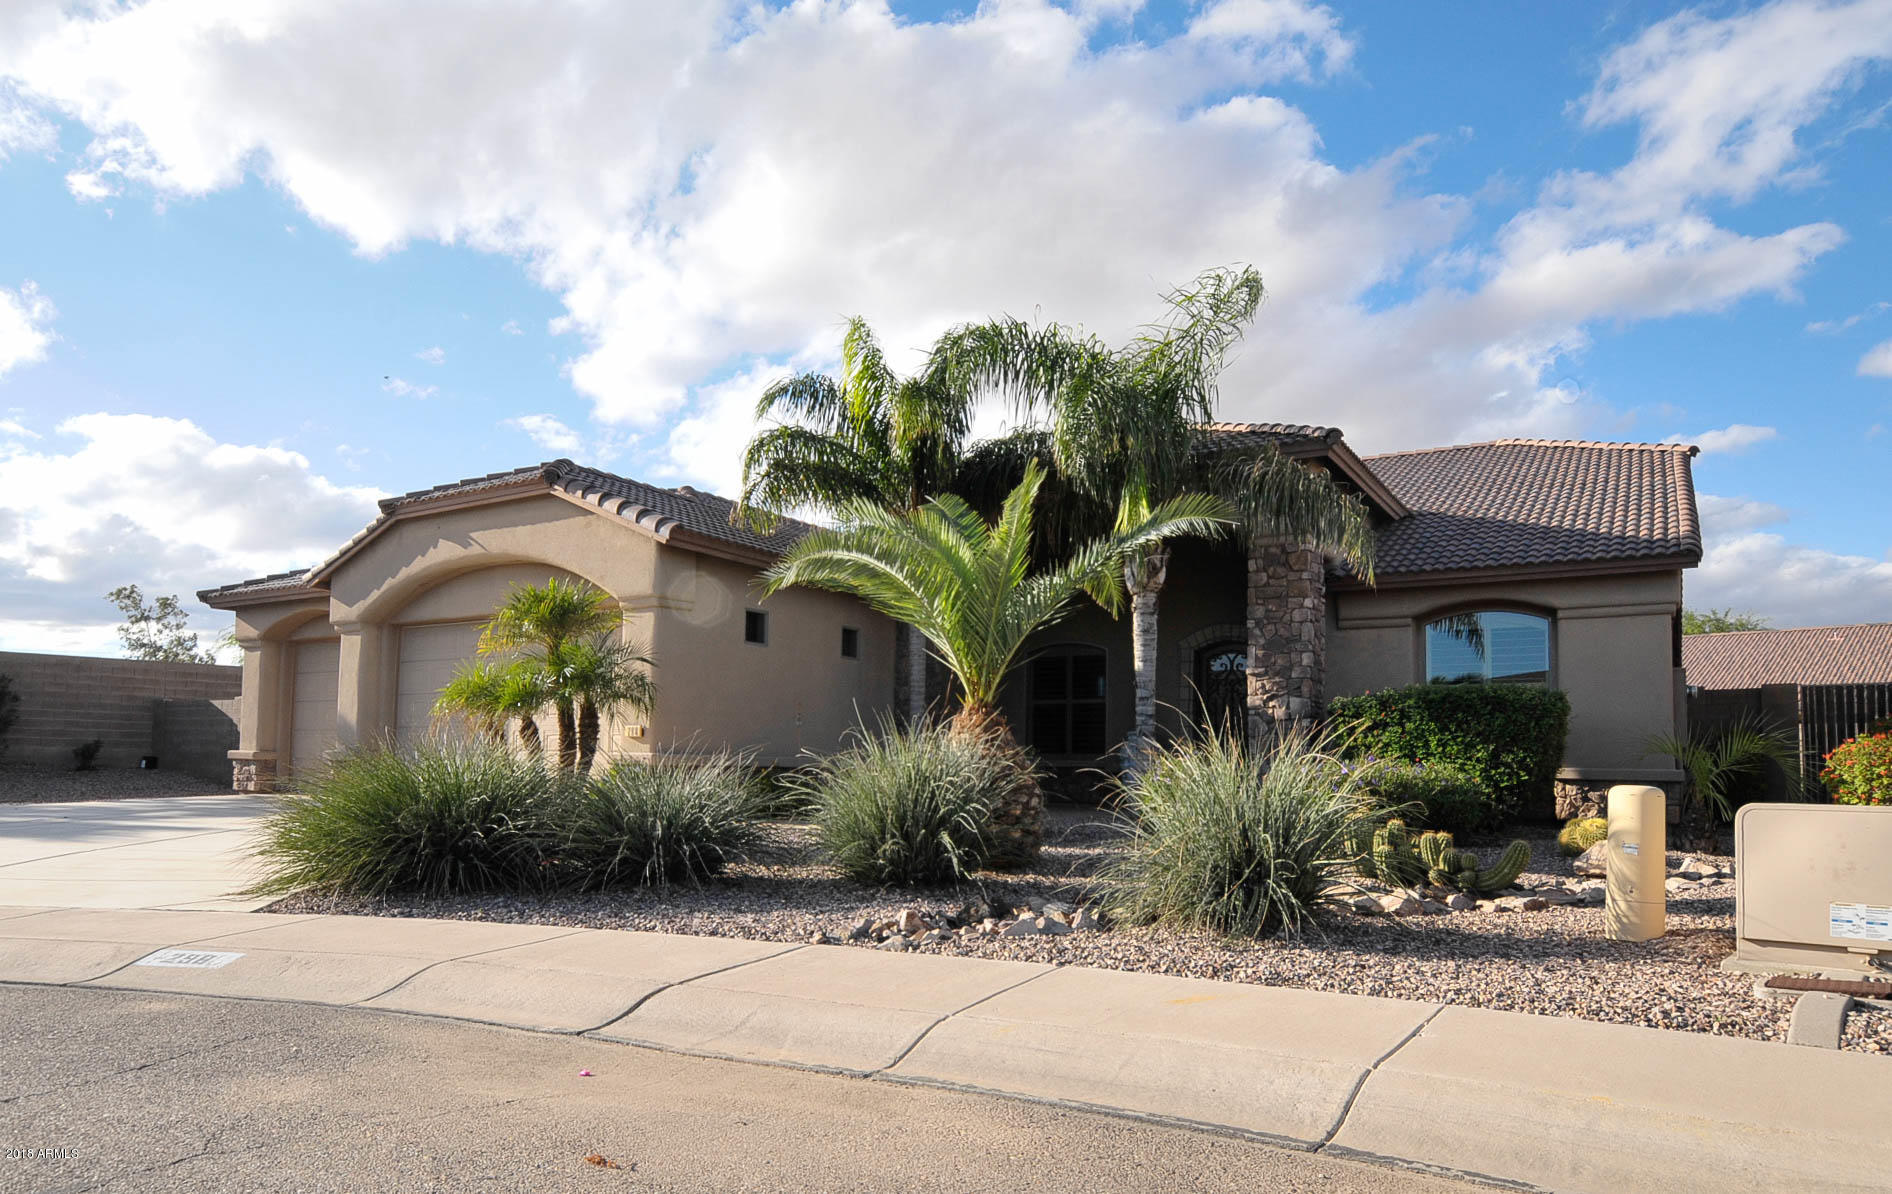 Photo for 298 W Rock Creek Place, Casa Grande, AZ 85122 (MLS # 5834462)